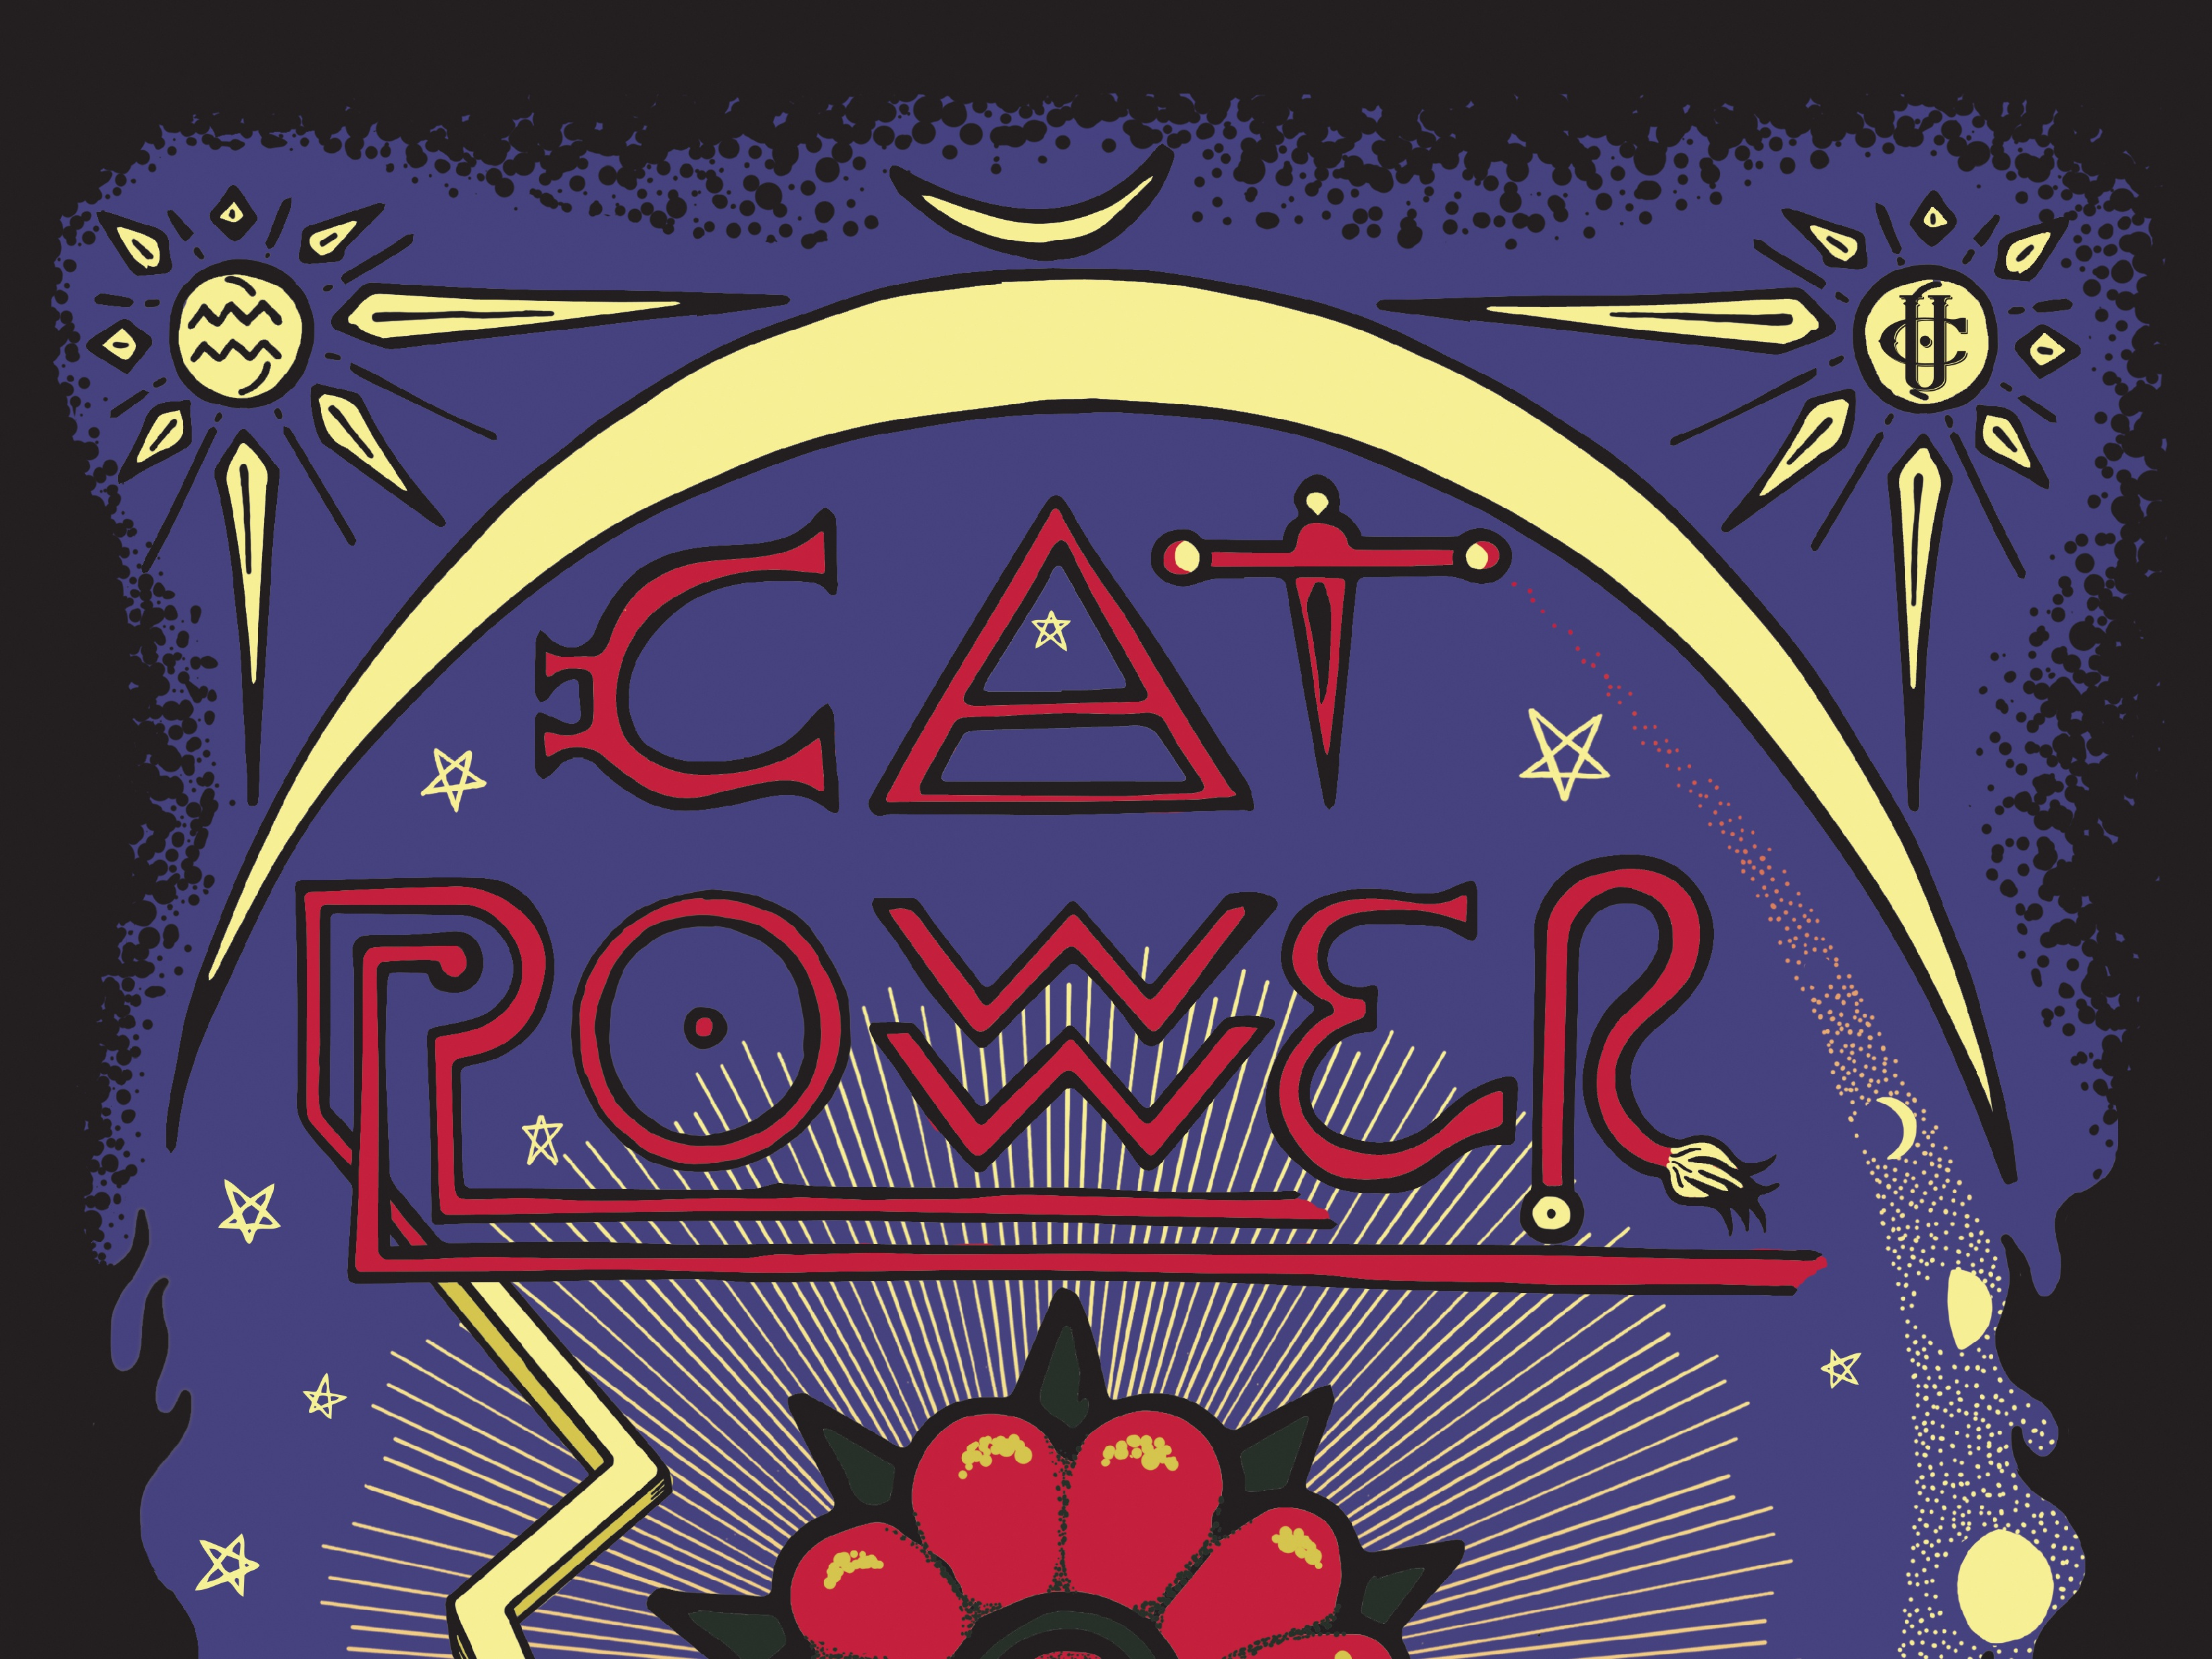 Cat power   uct082716   commemorative poster   rgb